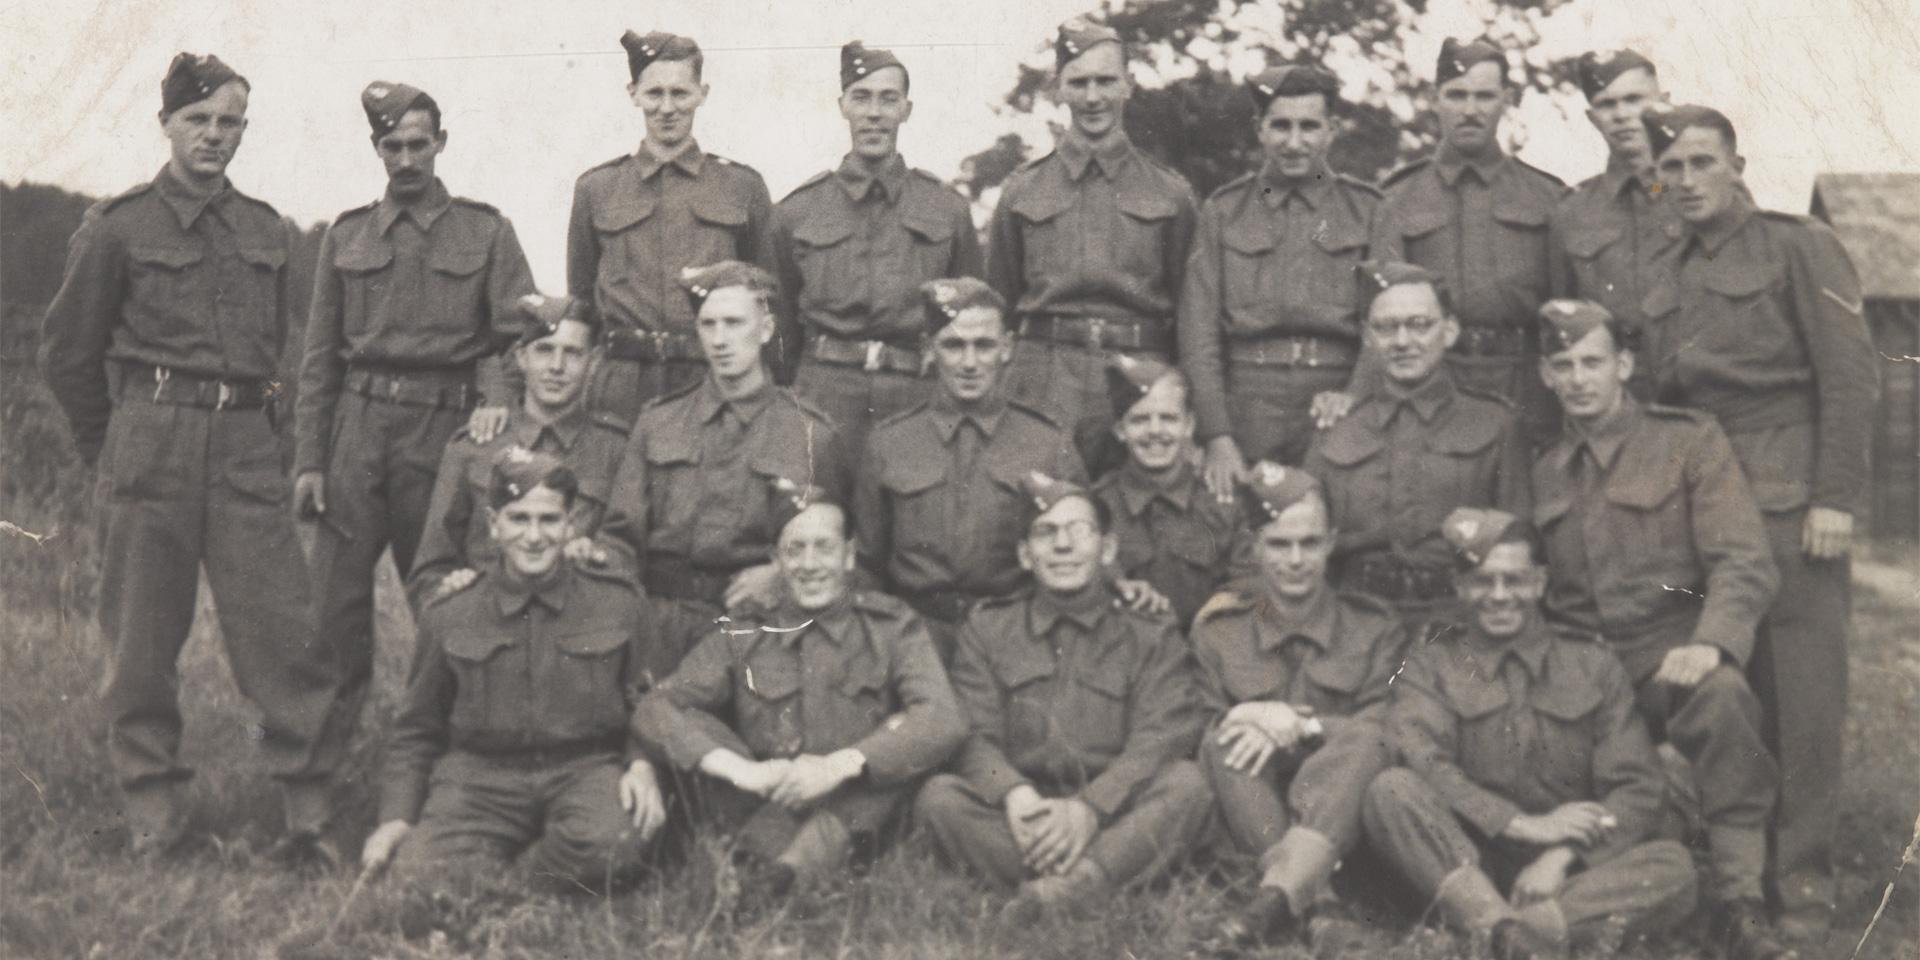 Private Abram Games (seated far right of middle row) with soldiers of The Royal Warwickshire Regiment, 1940